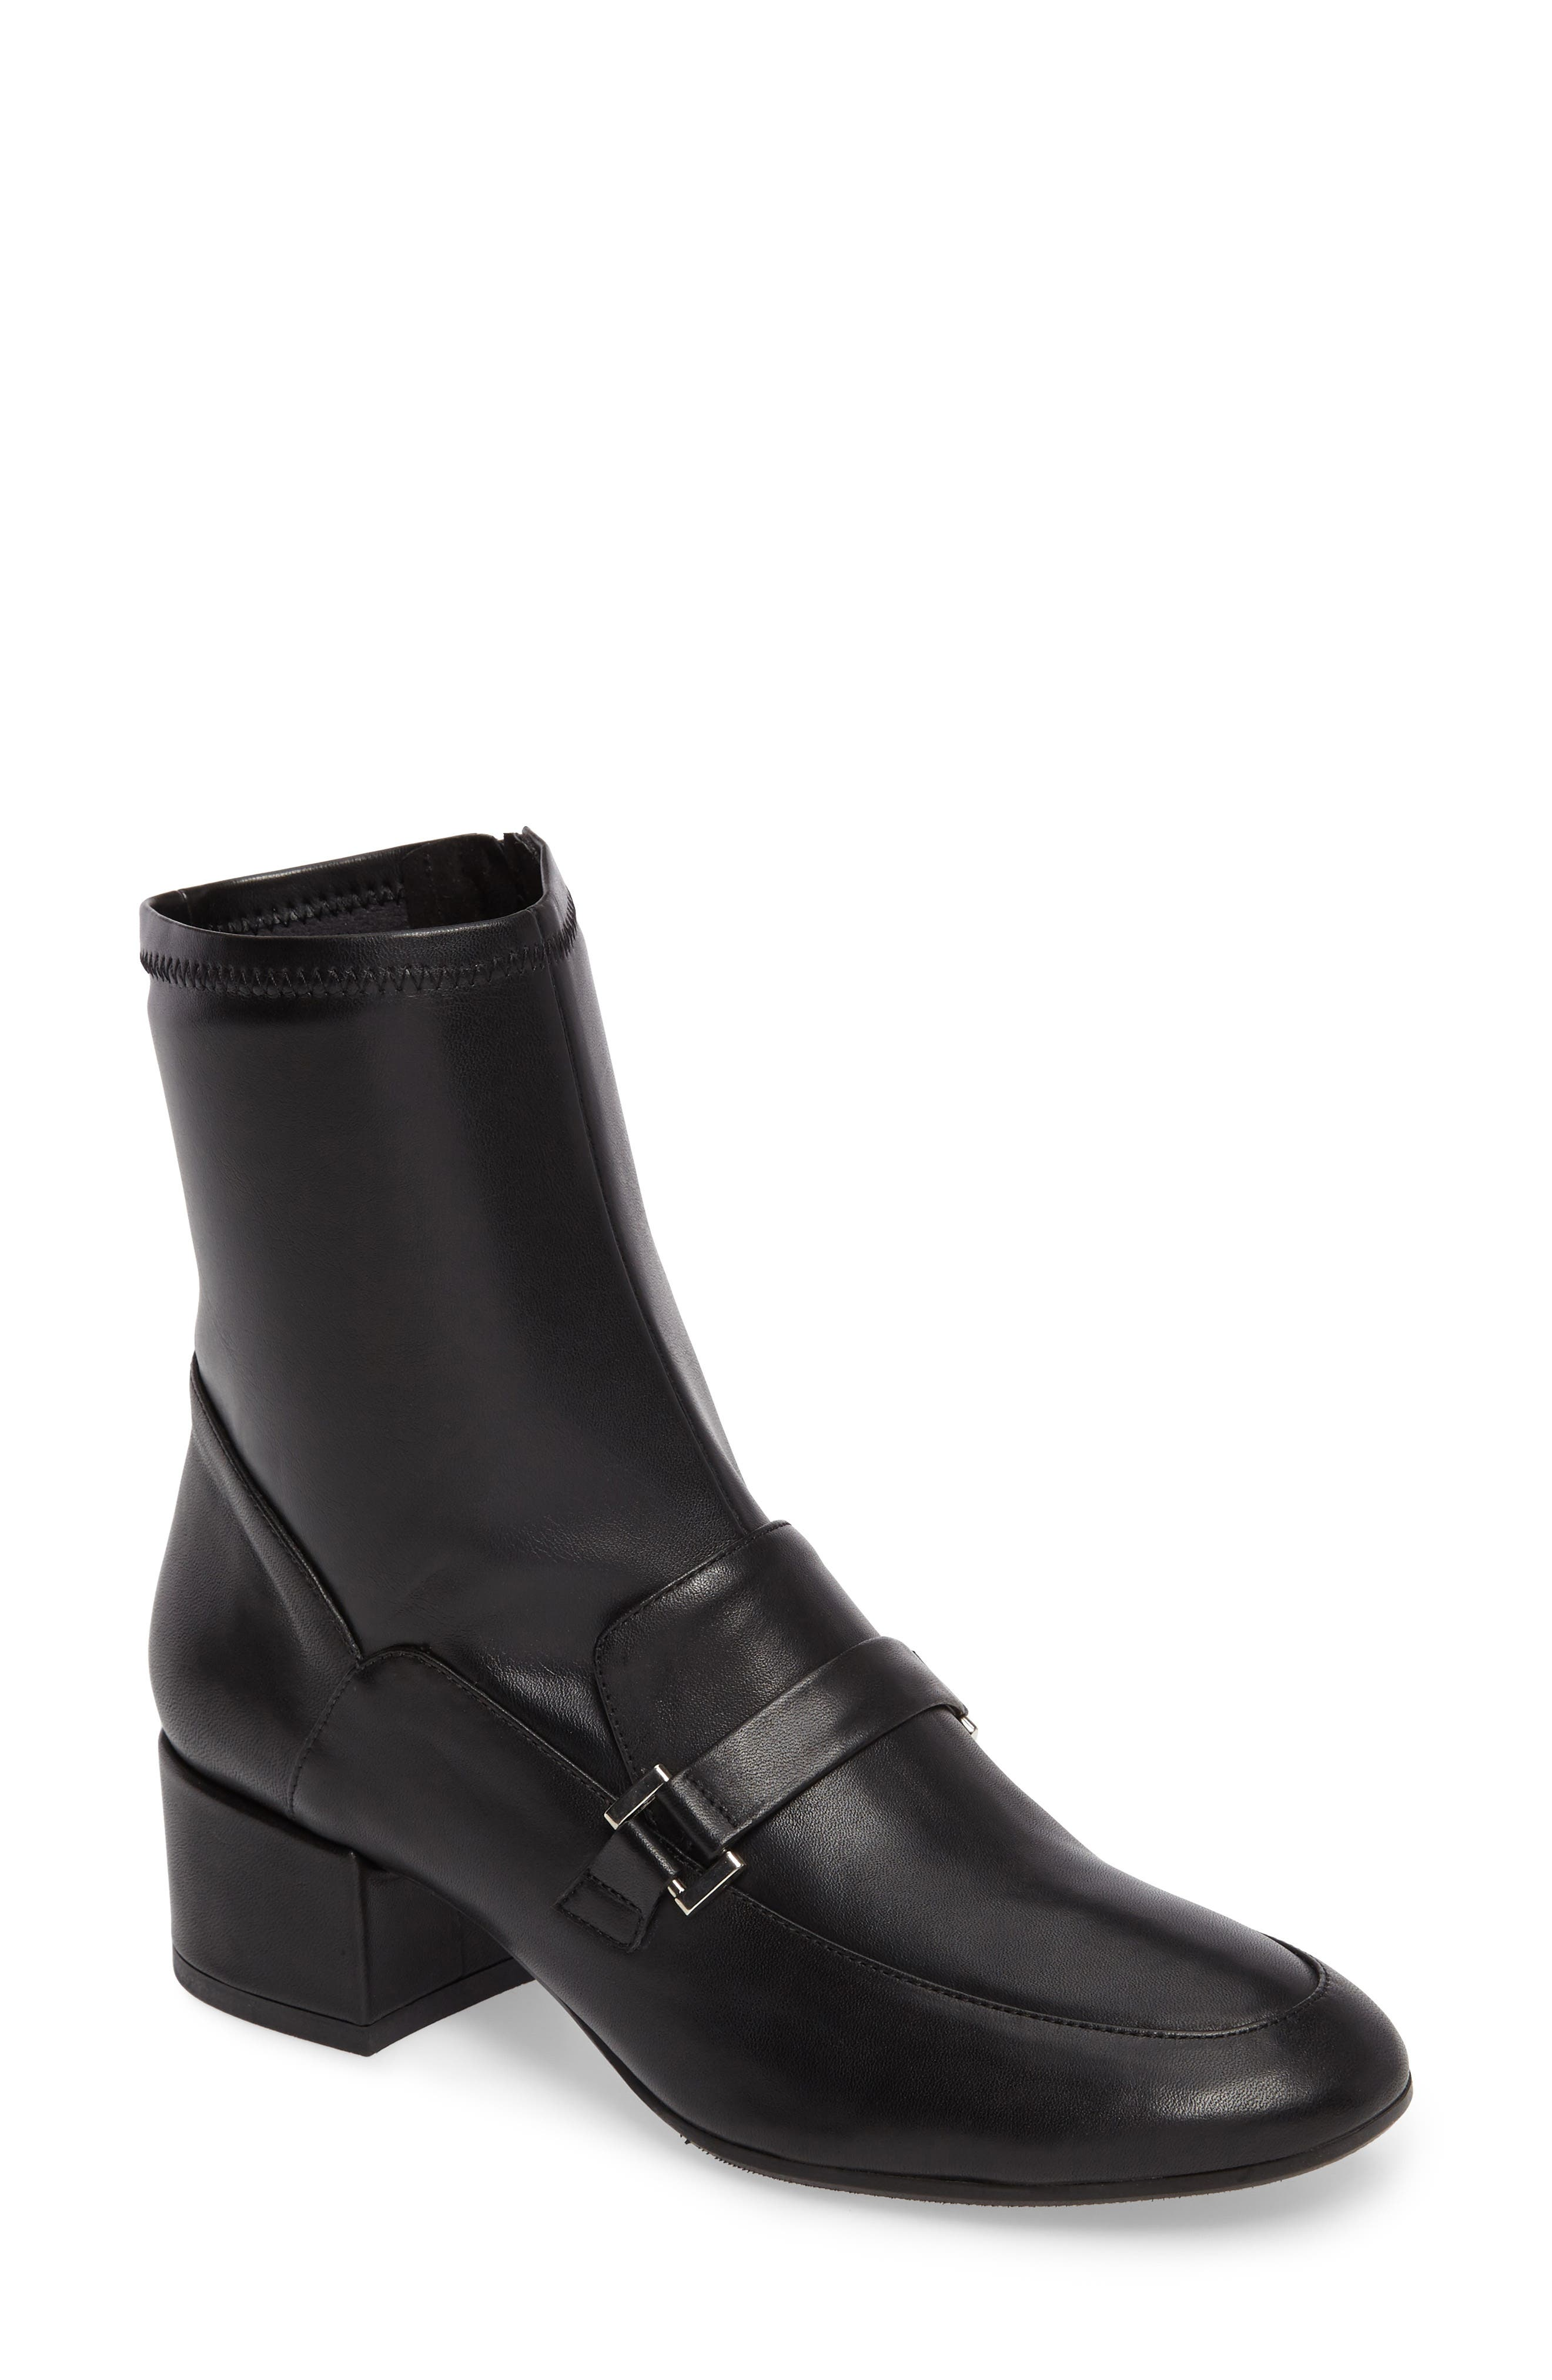 Mod Loafer Bootie,                             Main thumbnail 1, color,                             001